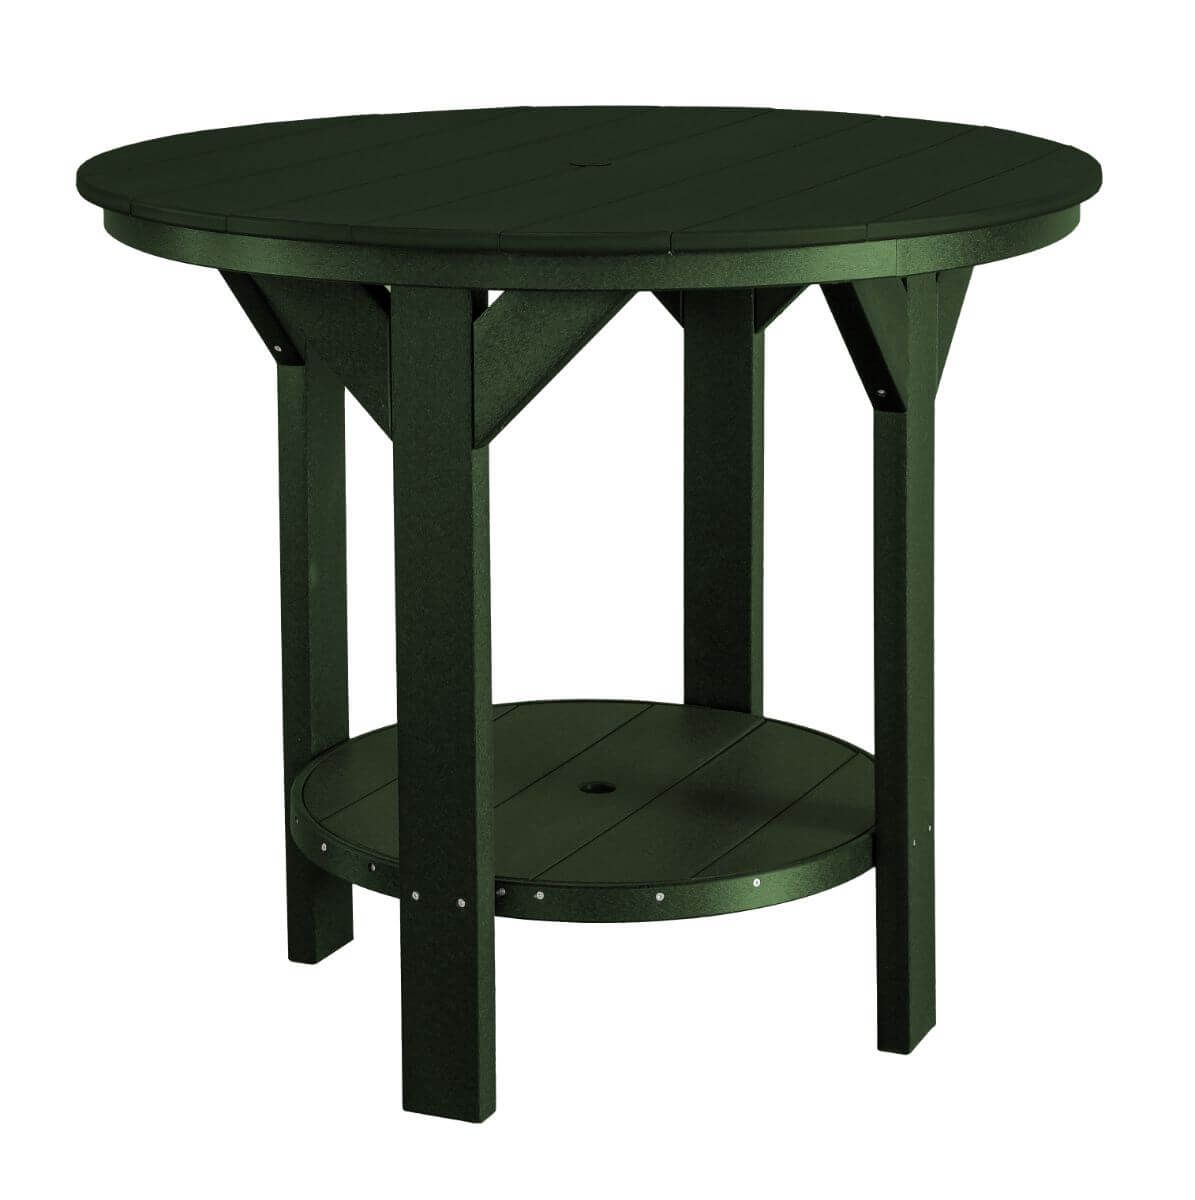 Turf Green Sidra Outdoor Pub Table